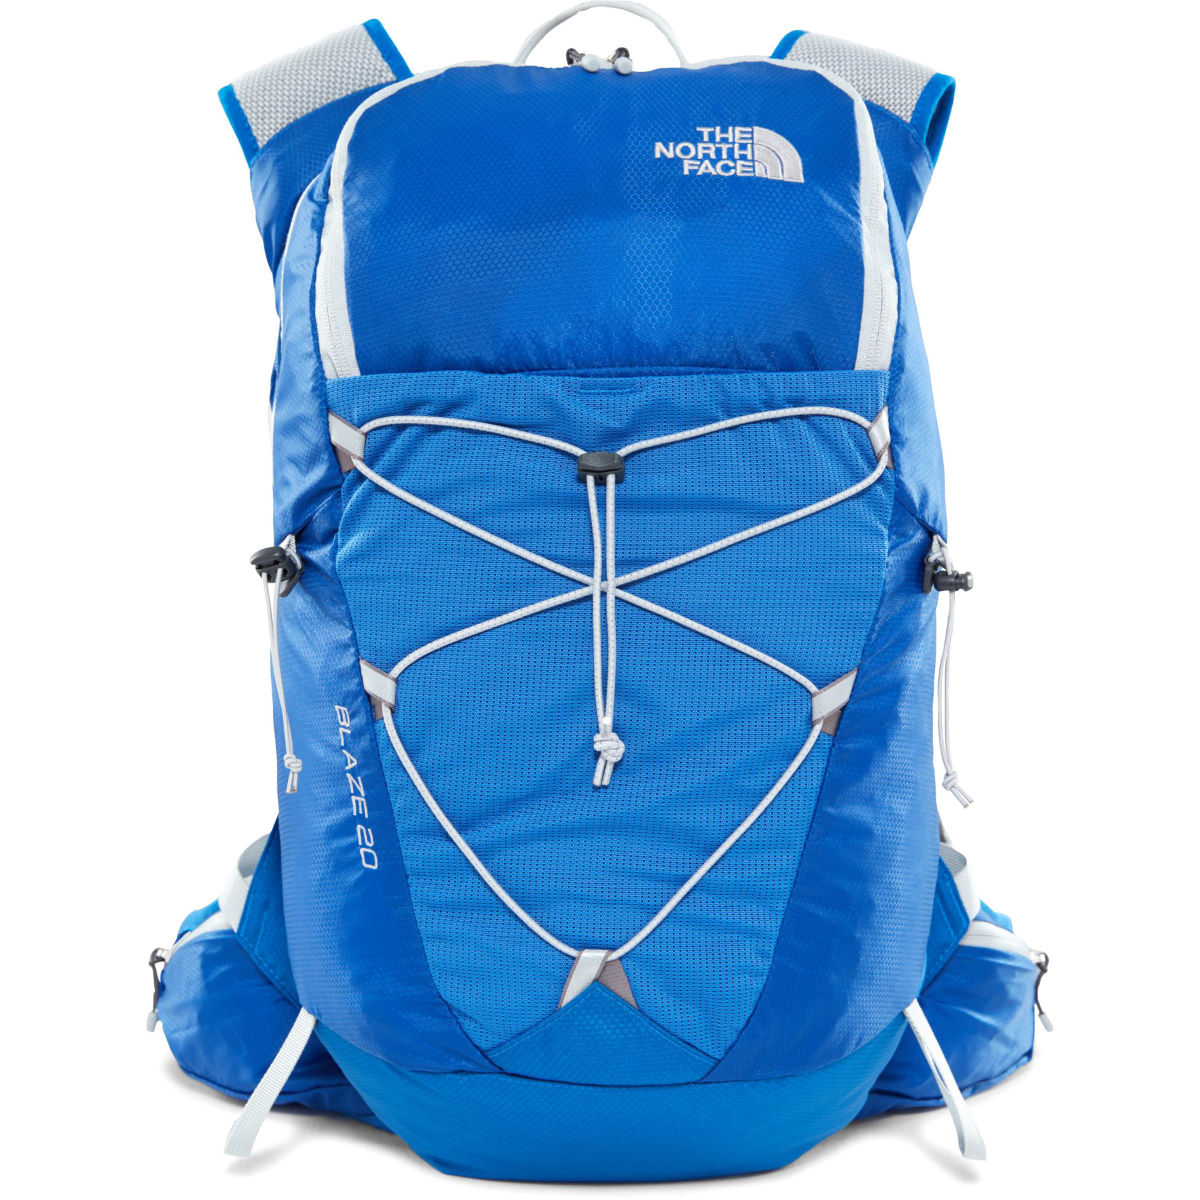 The North Face Blaze Backpack - Mochilas